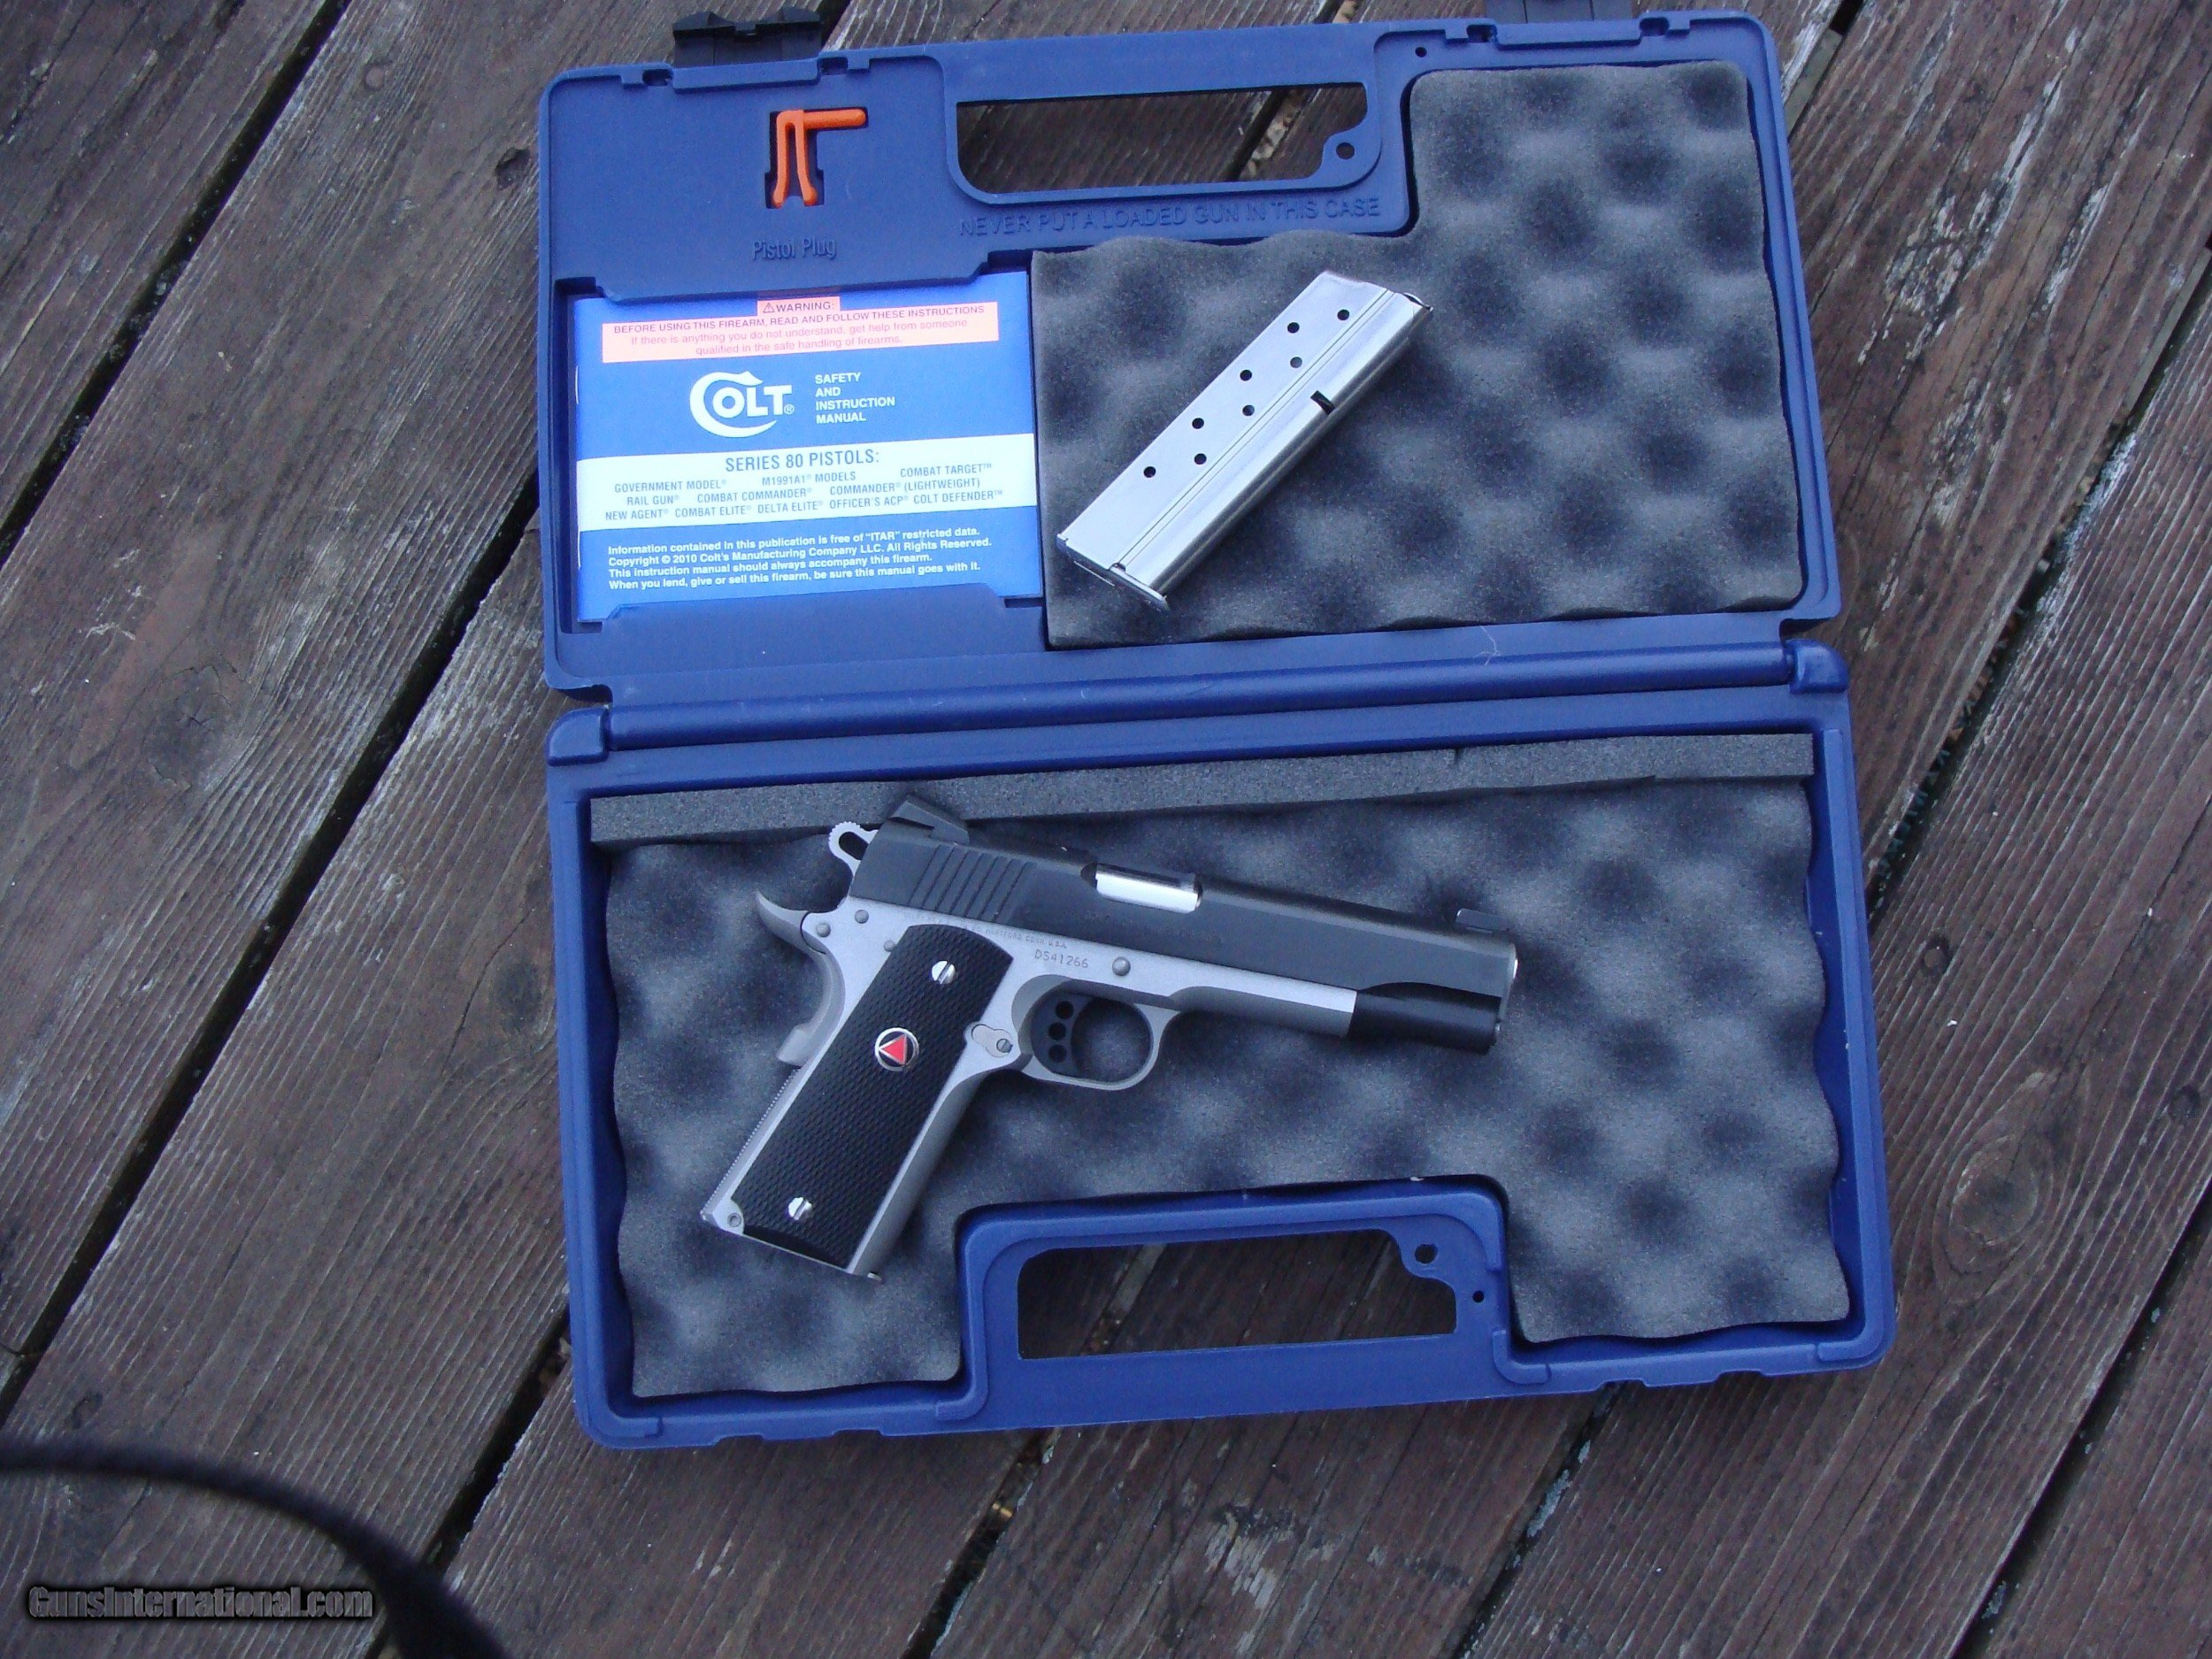 Colt Delta Elite 10 mm As New In Box W All Papers Not a Mark On